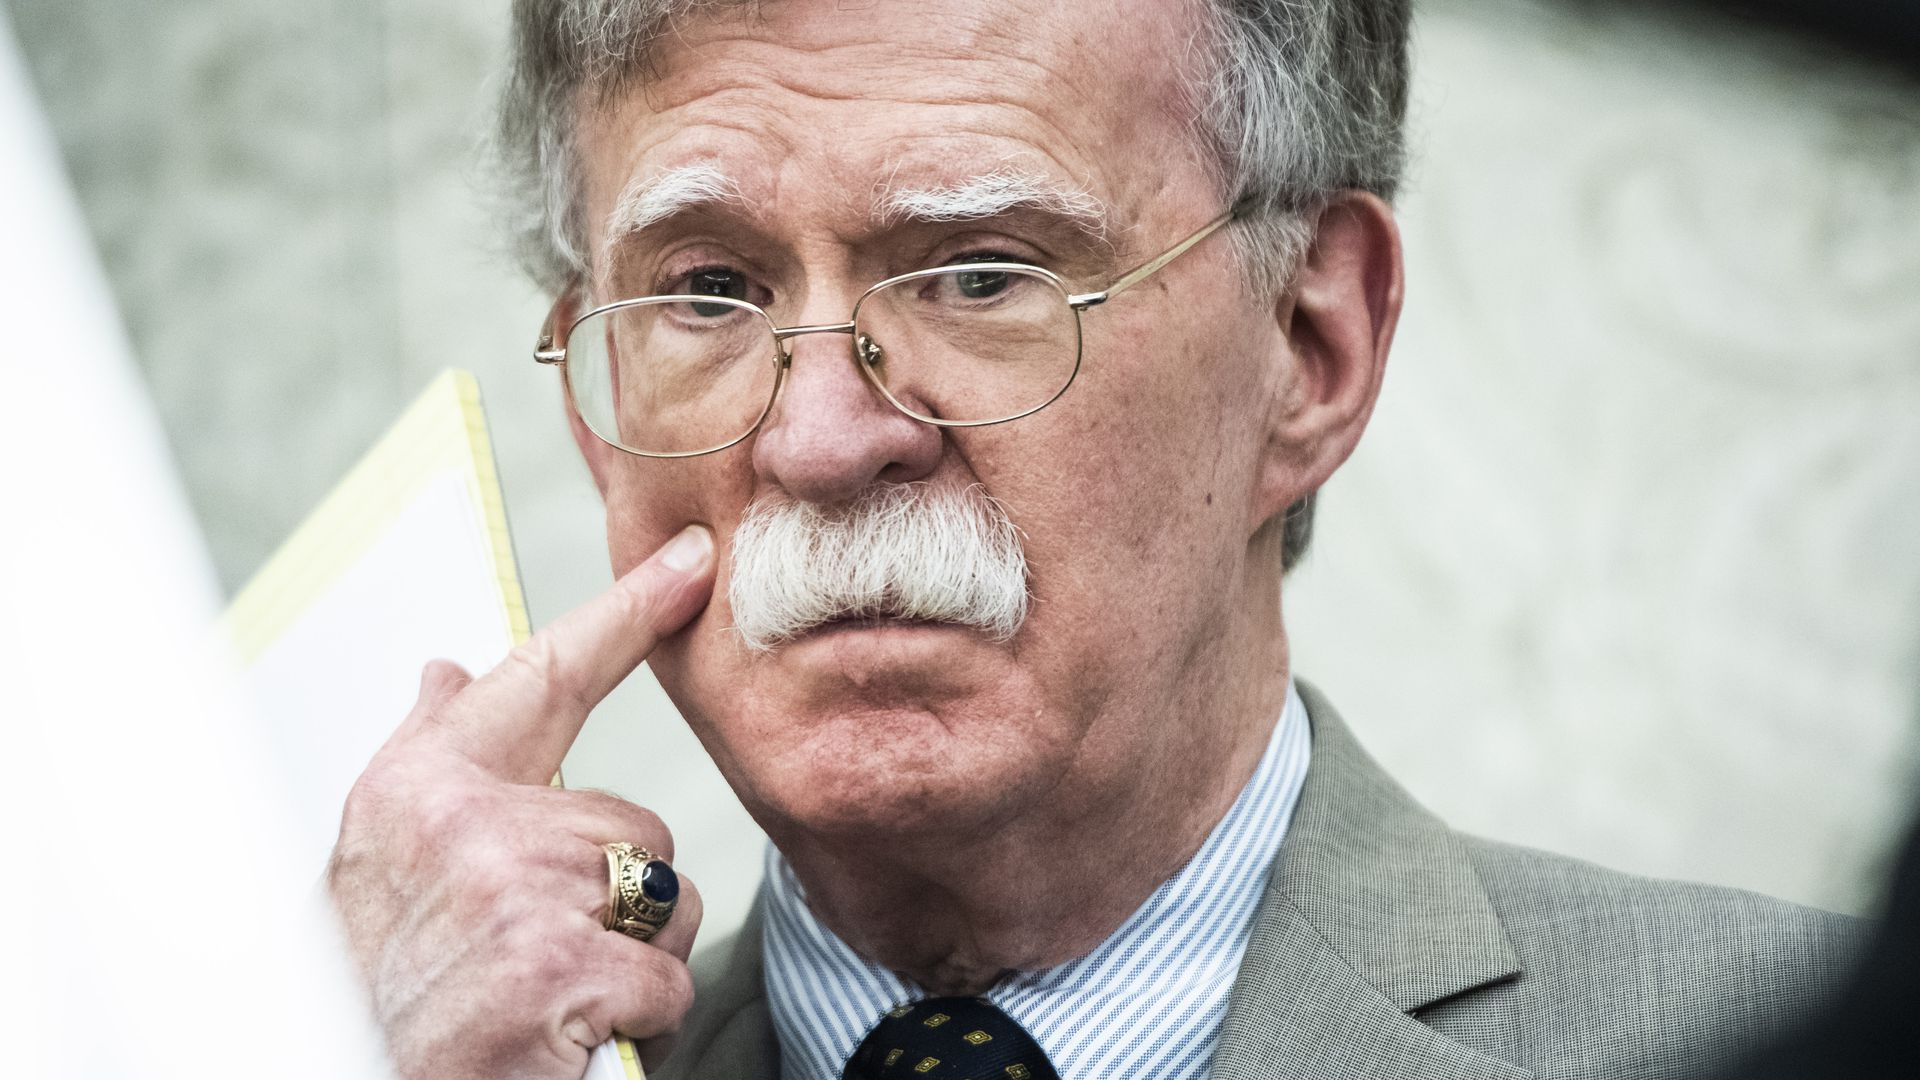 John Bolton denies coordinating with the New York Times on manuscript report